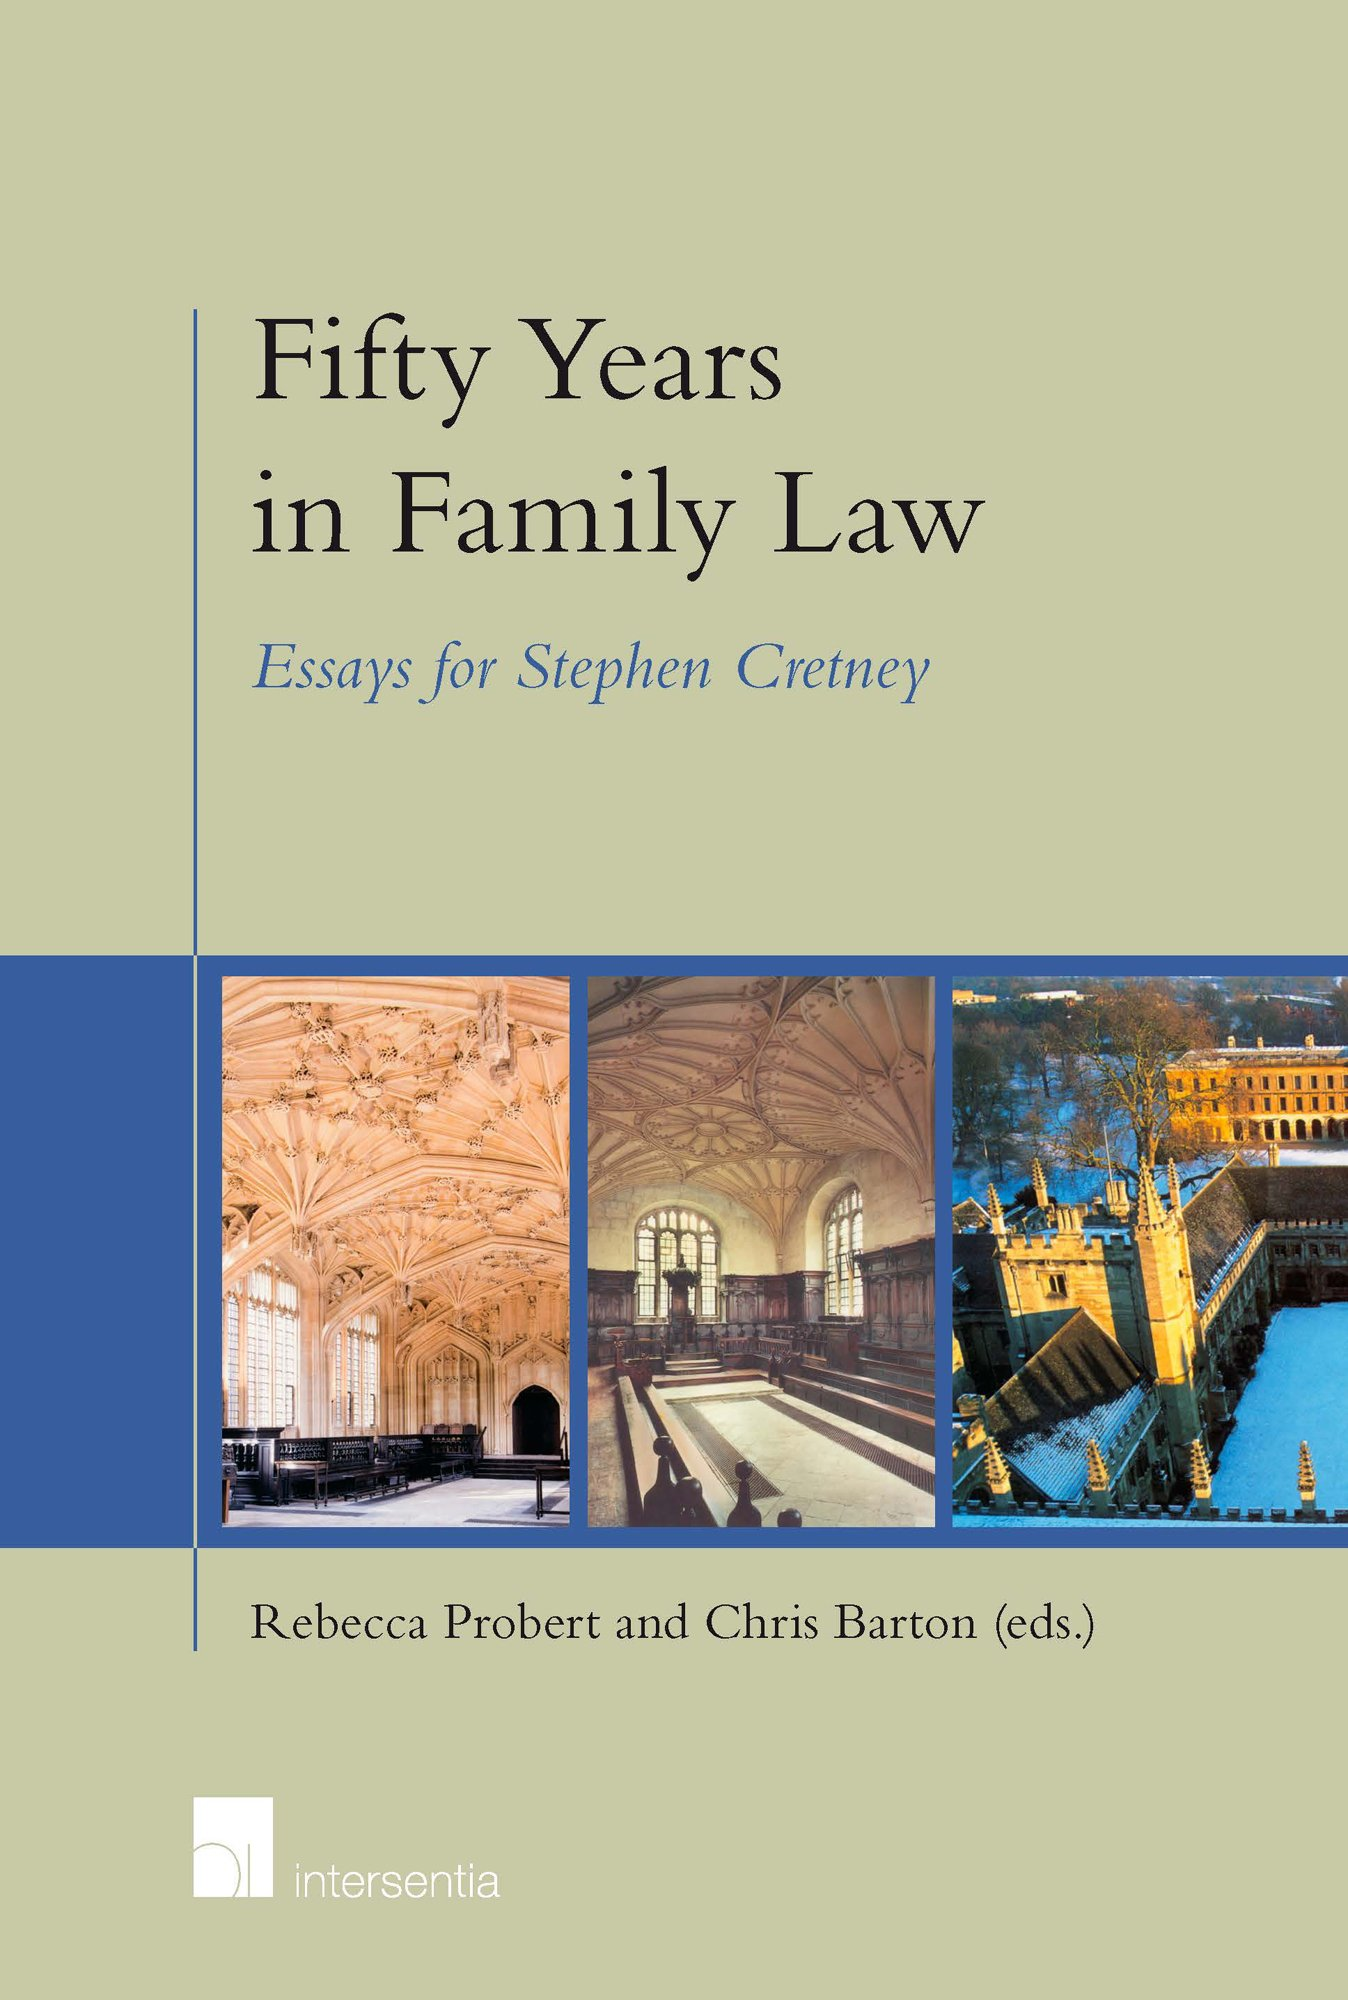 fifty years in family law essays for stephen cretney amazon co fifty years in family law essays for stephen cretney amazon co uk rebecca probert chris barton 9781780680521 books